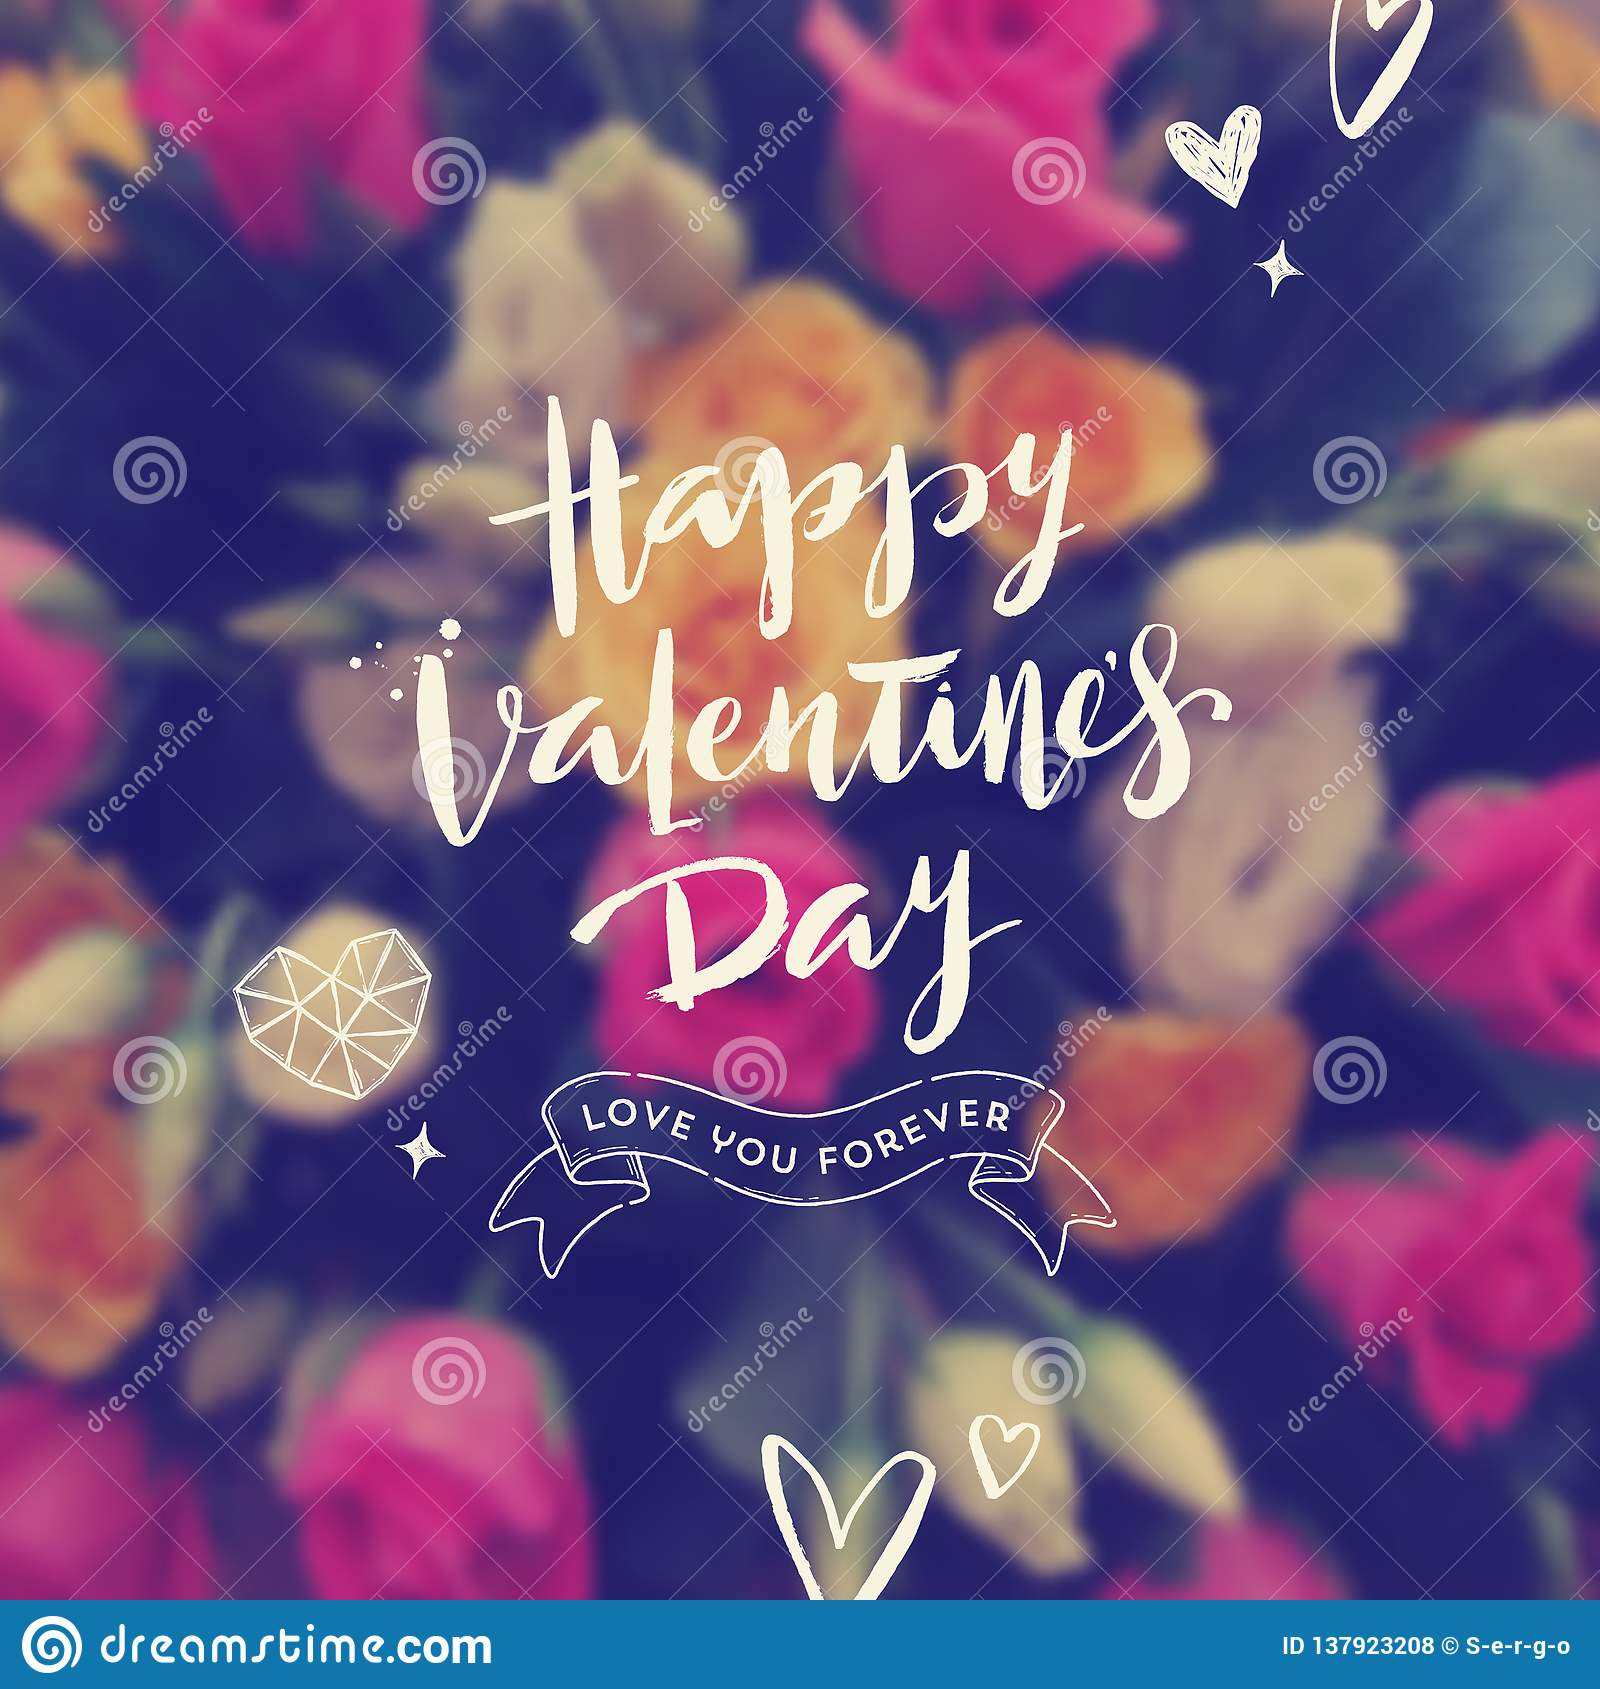 Happy Valentines Day - Greeting card.